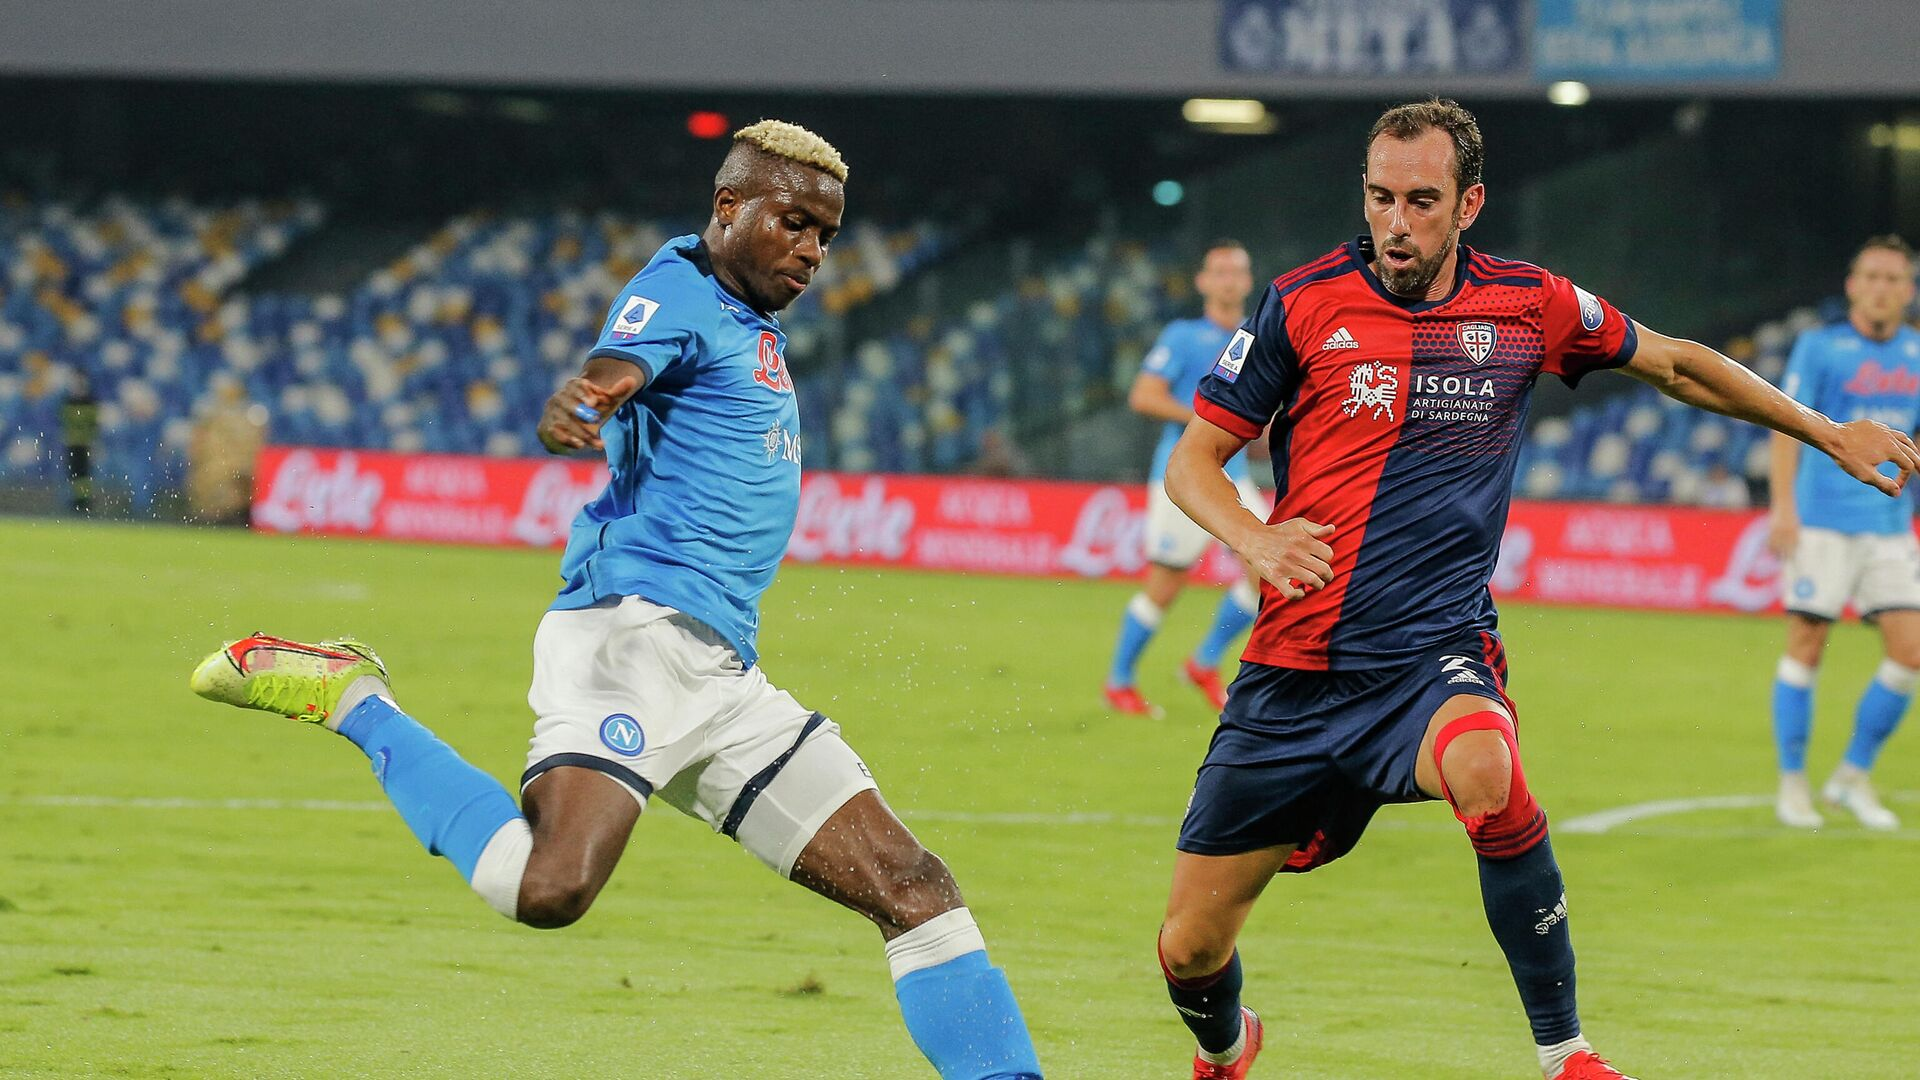 Napoli's Nigerian forward Victor Osimhen (L) challenges Cagliari's Uruguayan defender Diego Godin during the Italian Serie A between Napoli and Cagliari on September 26, 2021 at the Diego-Maradona stadium in Naples. (Photo by Carlo Hermann / AFP) - РИА Новости, 1920, 27.09.2021